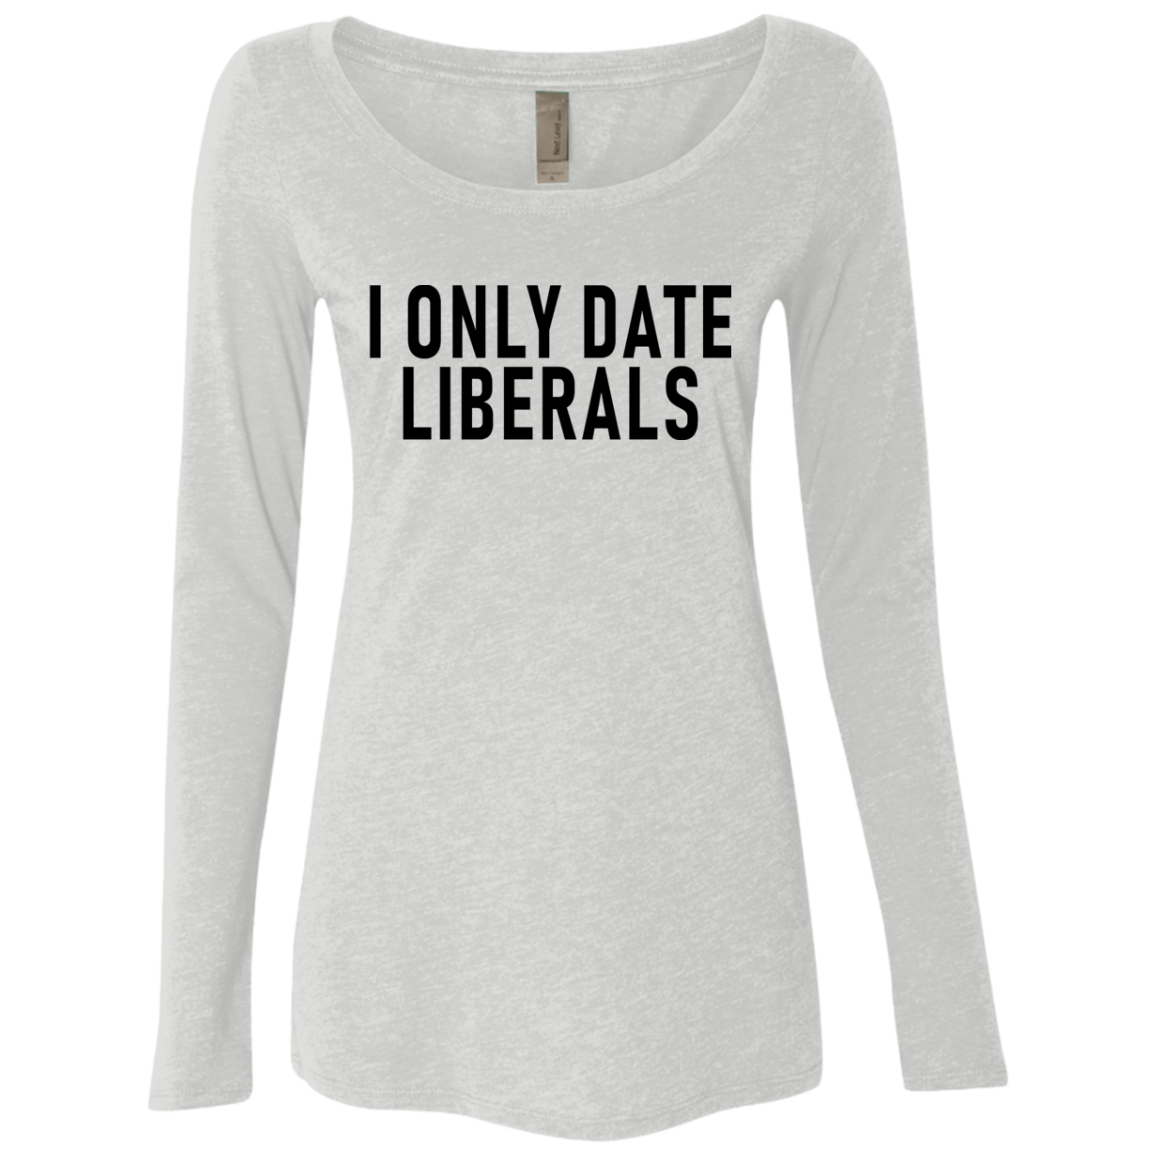 I Only Date Liberals Women's Long Sleeve Tee